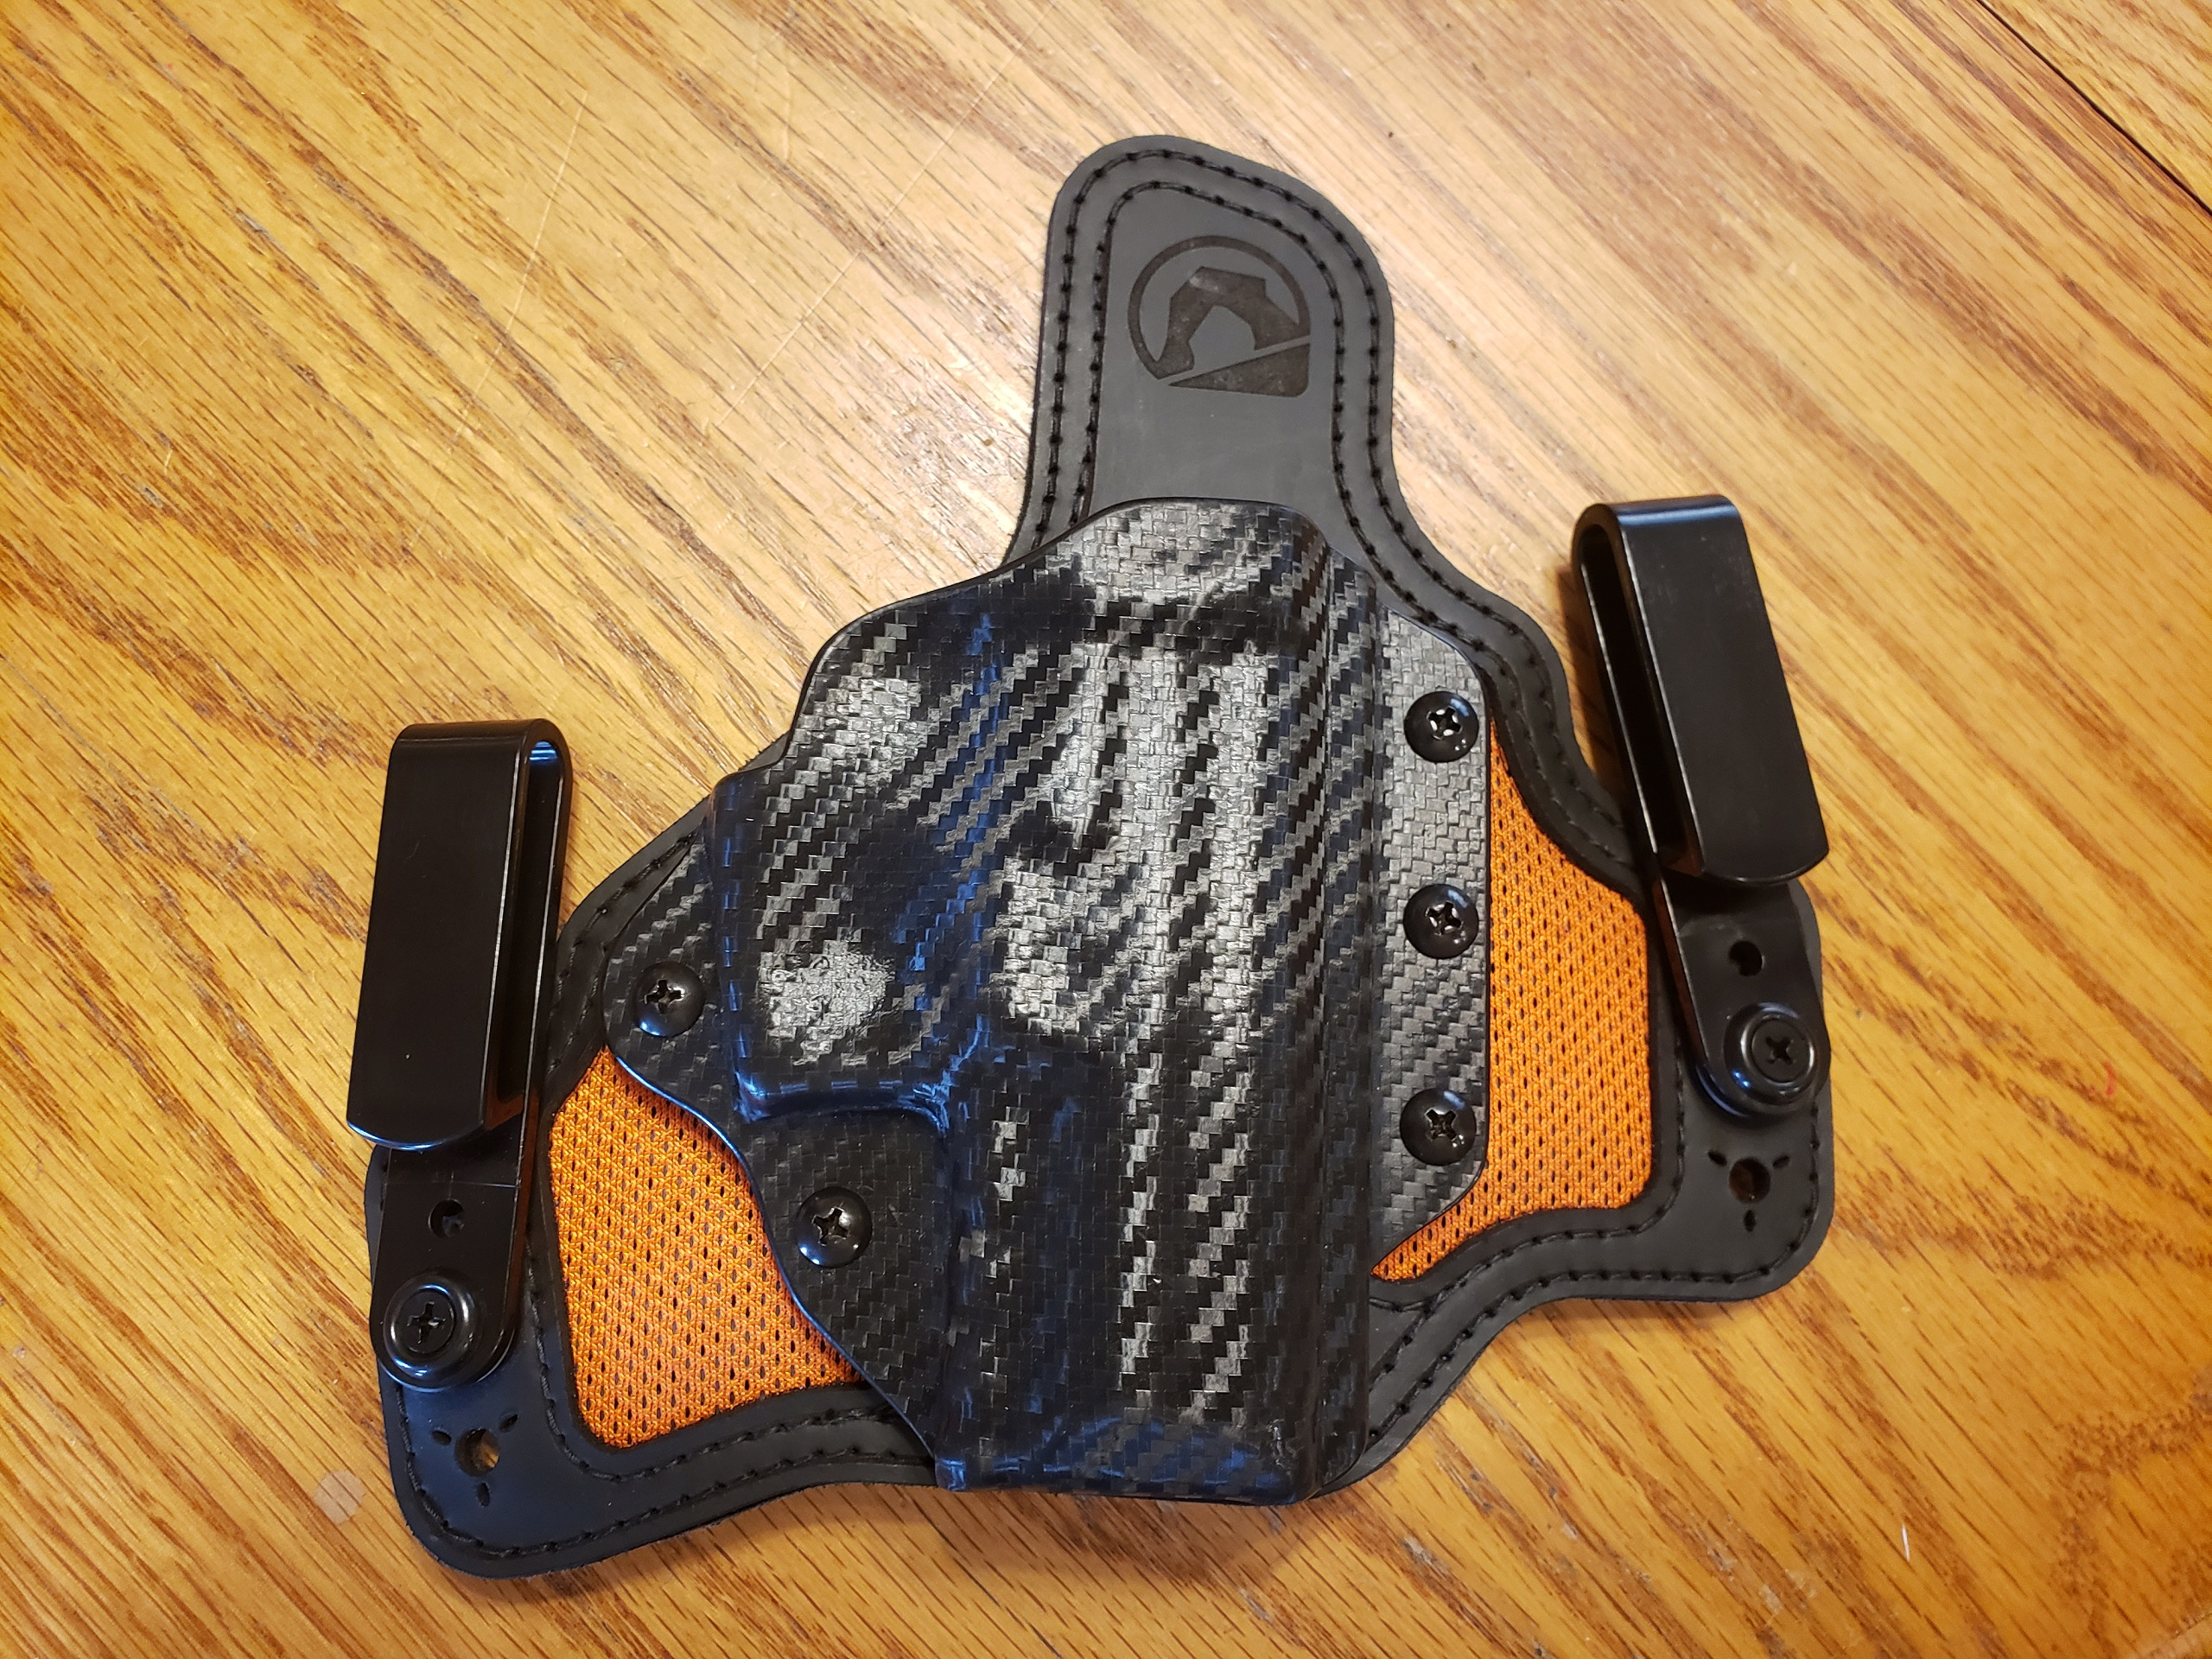 WTS-WTT:  VP9SK Black Arch IWB Holster RH.  As new!-20191228_153132.jpg